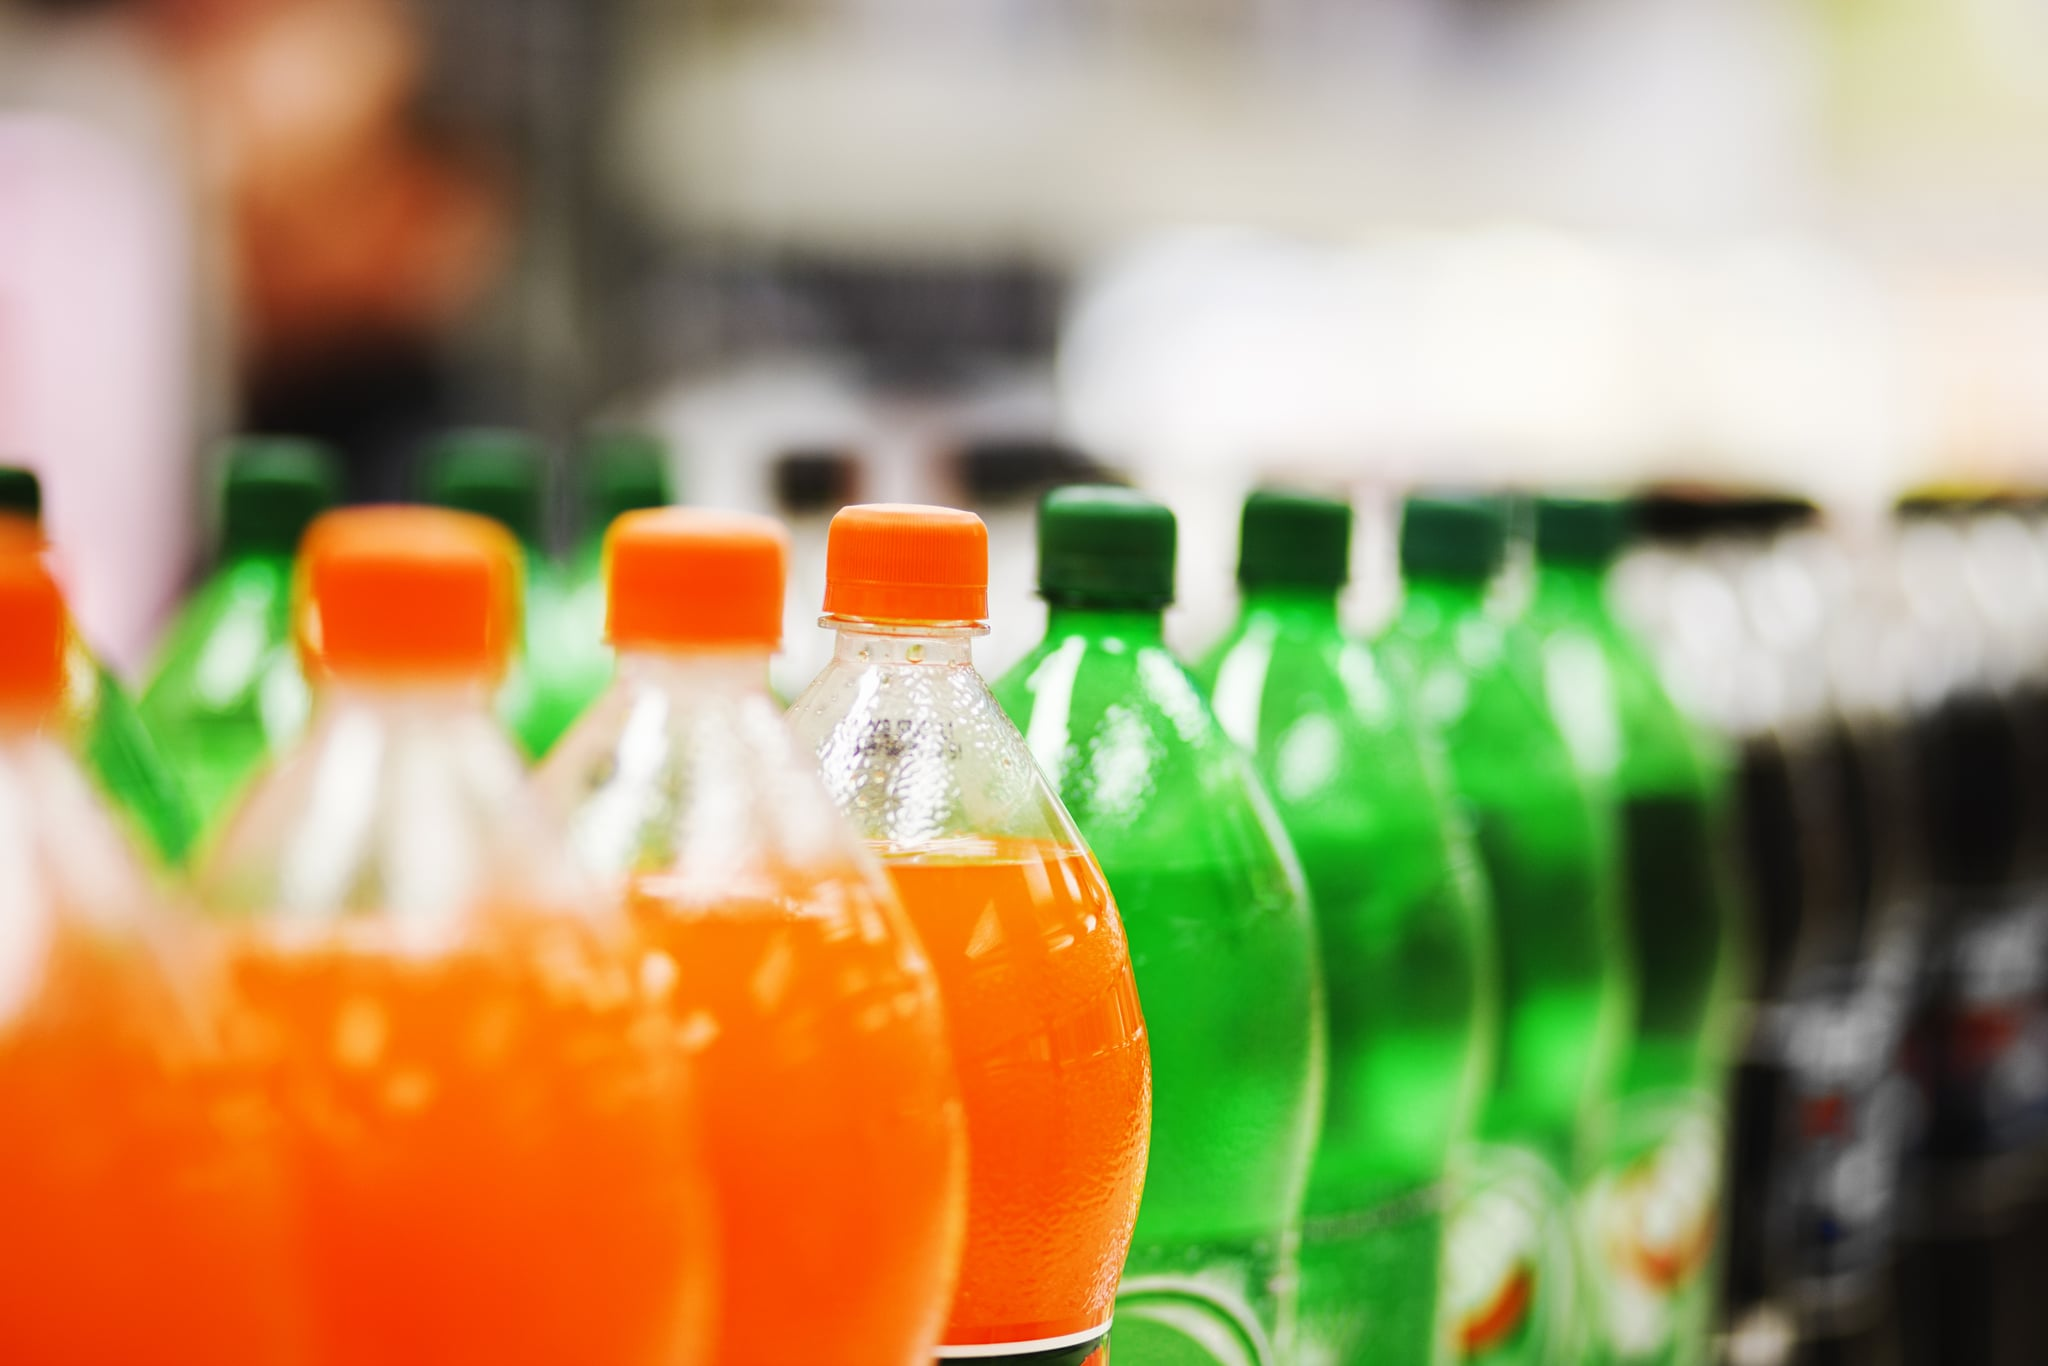 A long line of unbranded soda bottles in various flavours and colours, the focus on the centre of the line.